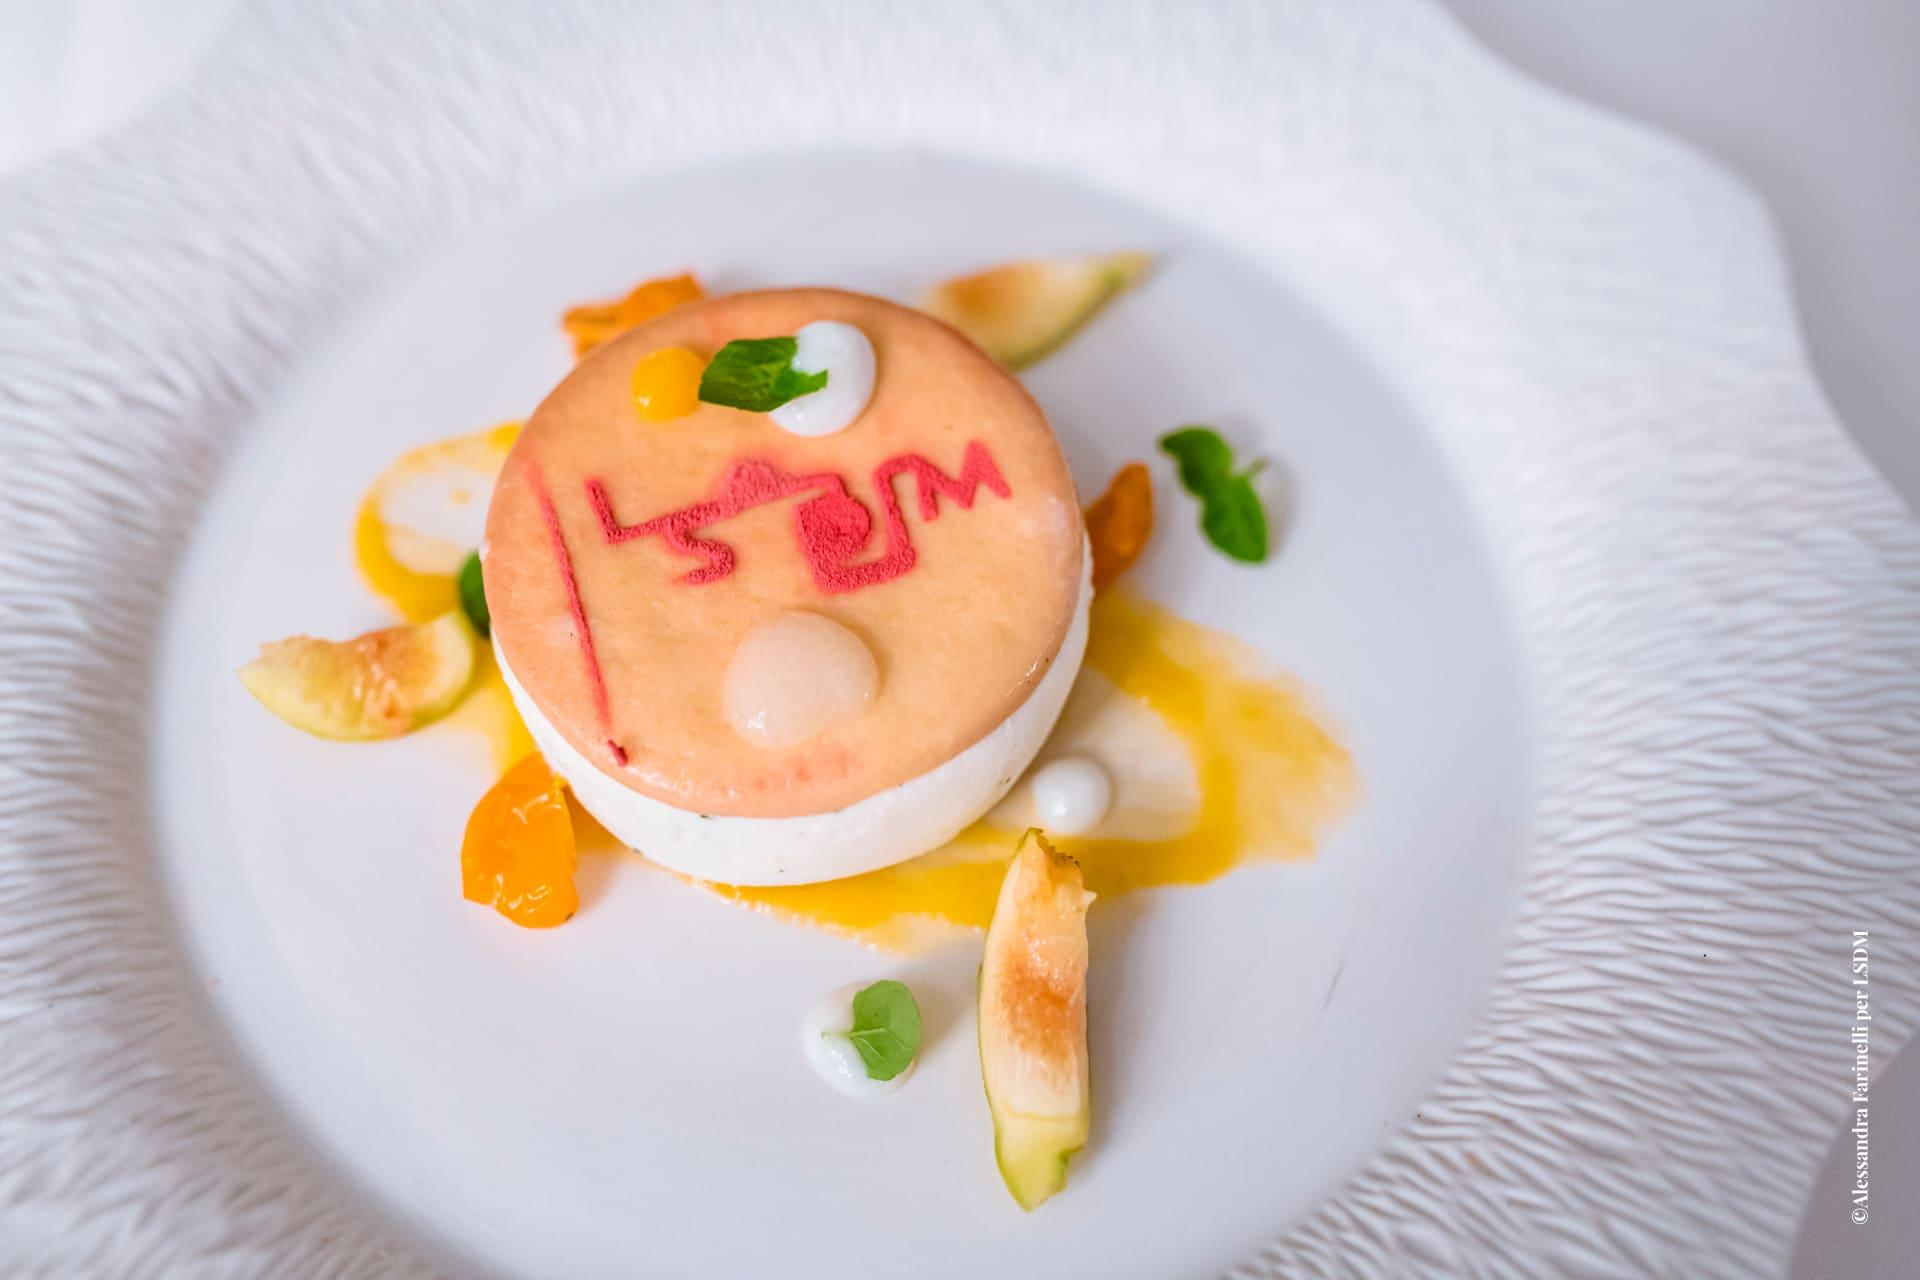 Pastry Chef Angelo Mattia Tramontano: a treat dedicated to LSDM and Cilento